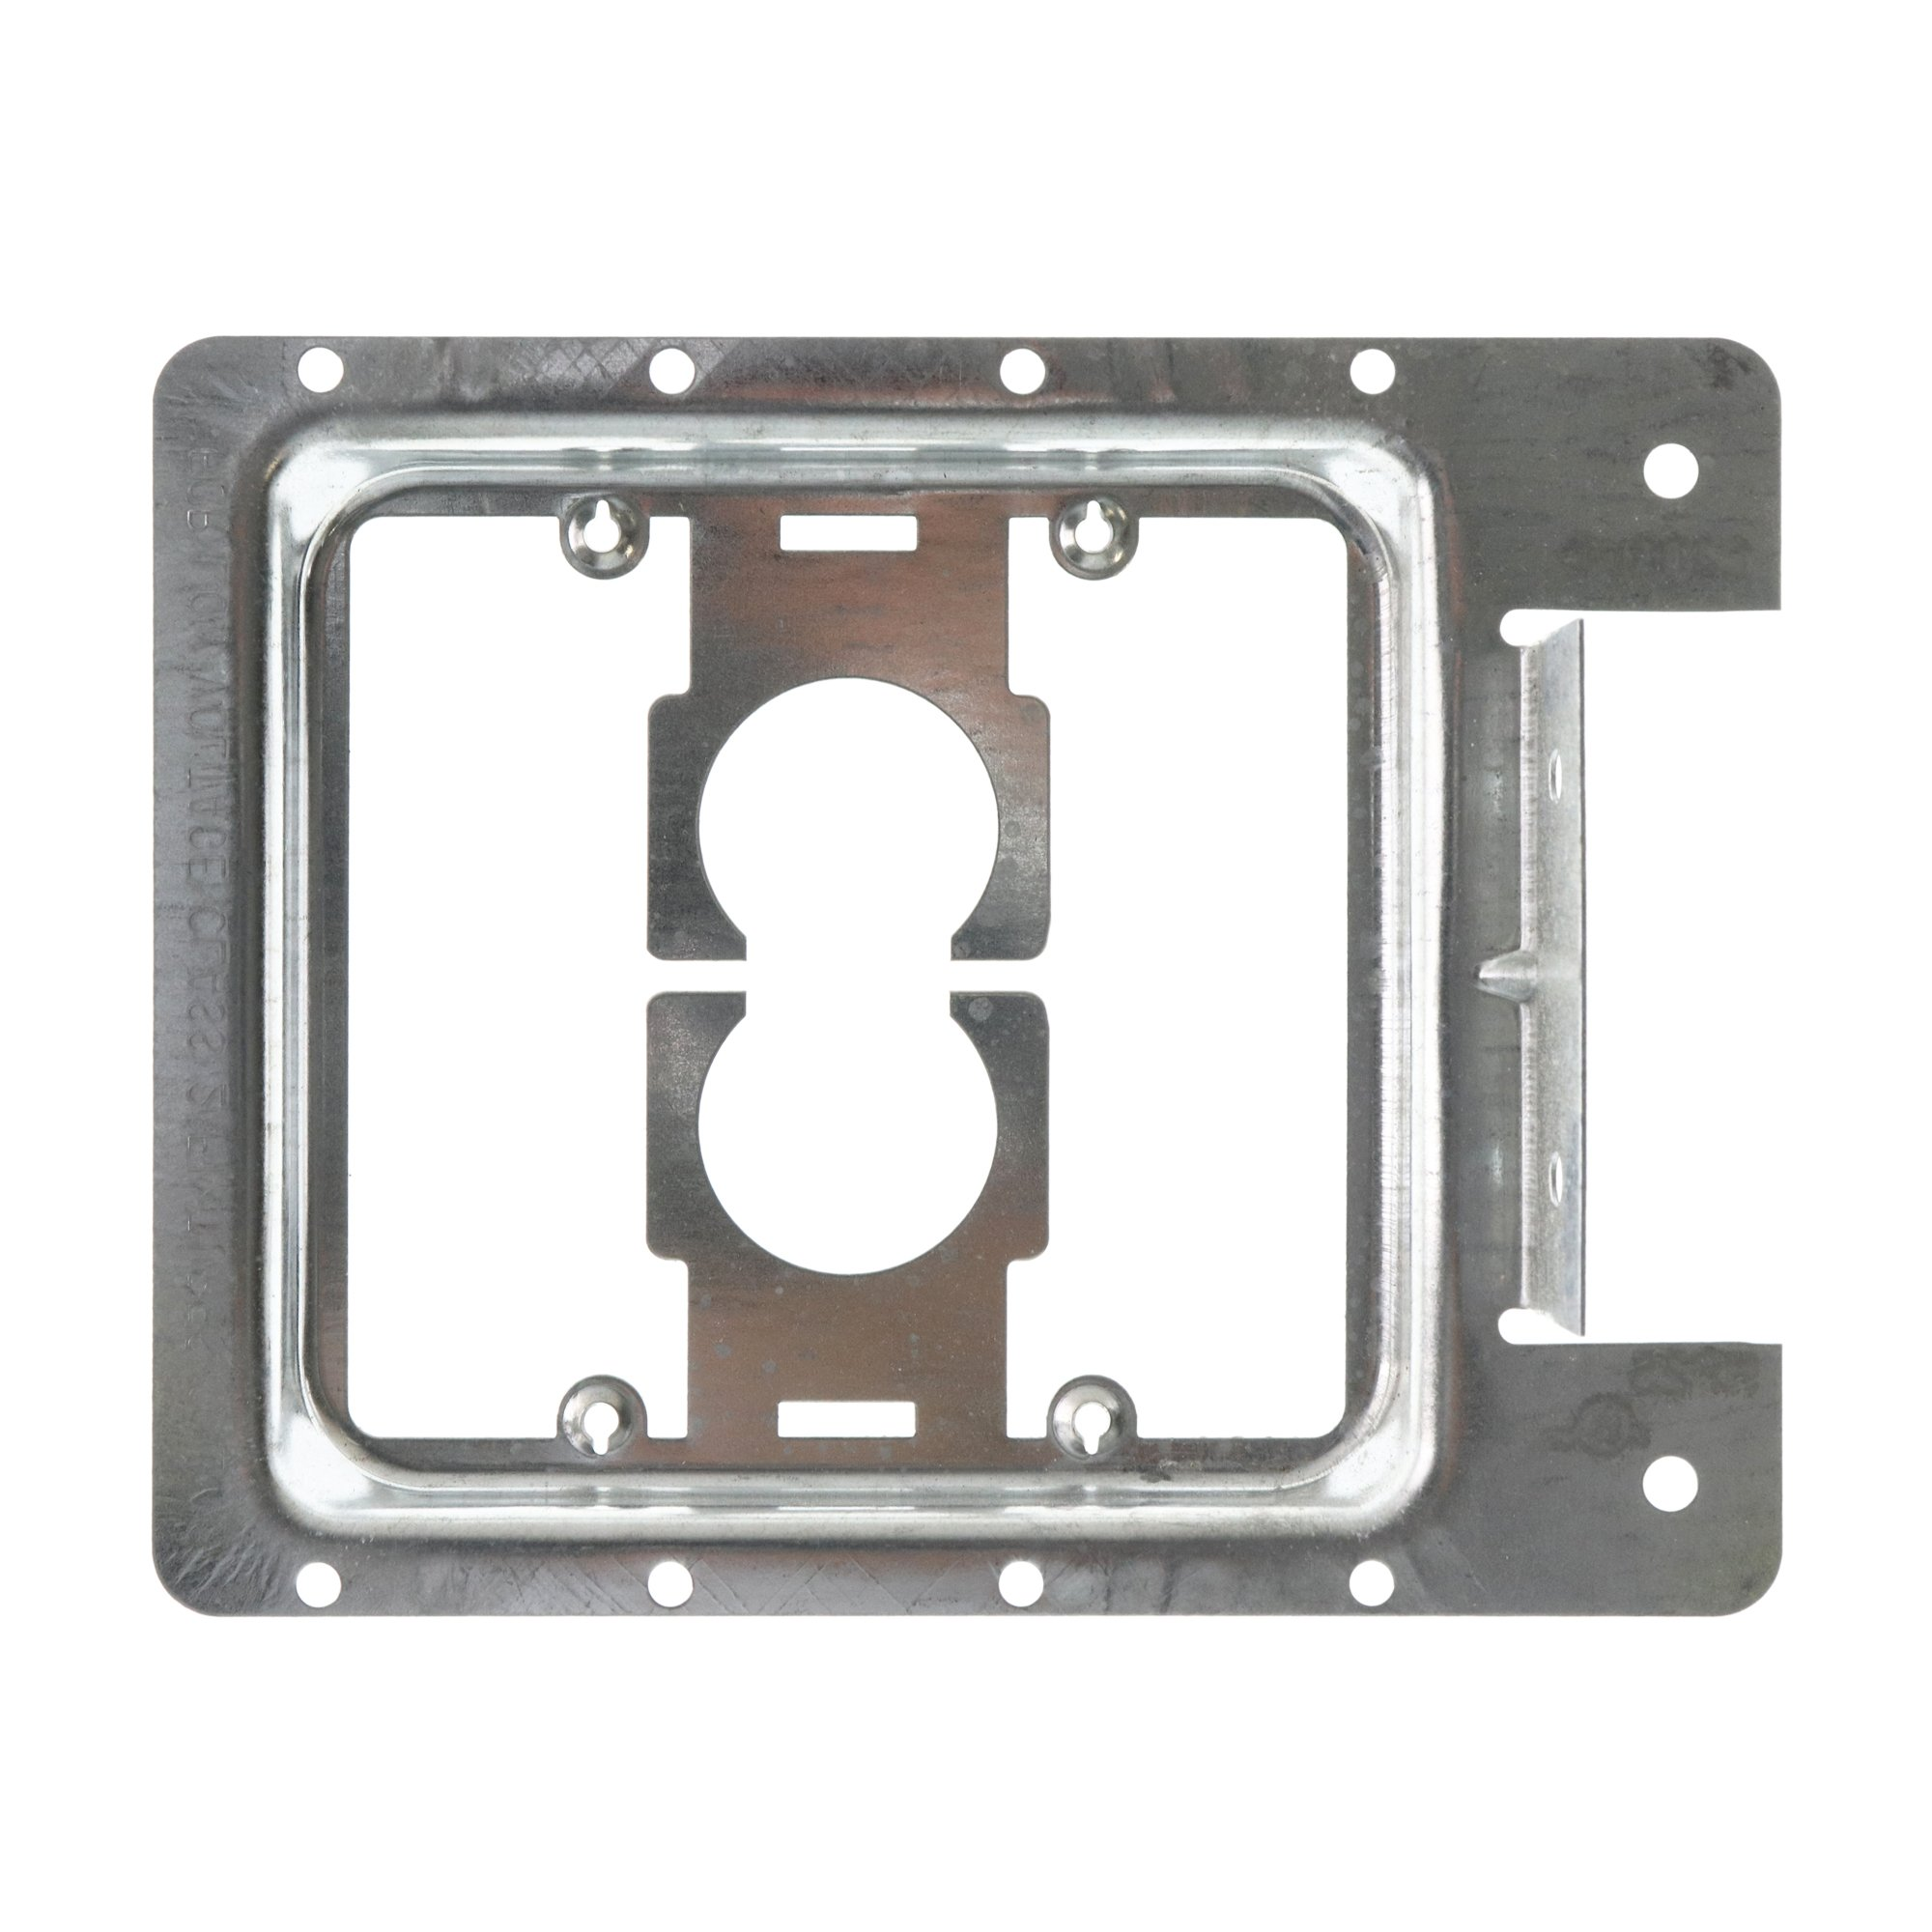 Caddy Erico MP2S Low Voltage Mounting Bracket Plate, 2-Gang, Nail-On, (25-Pack)